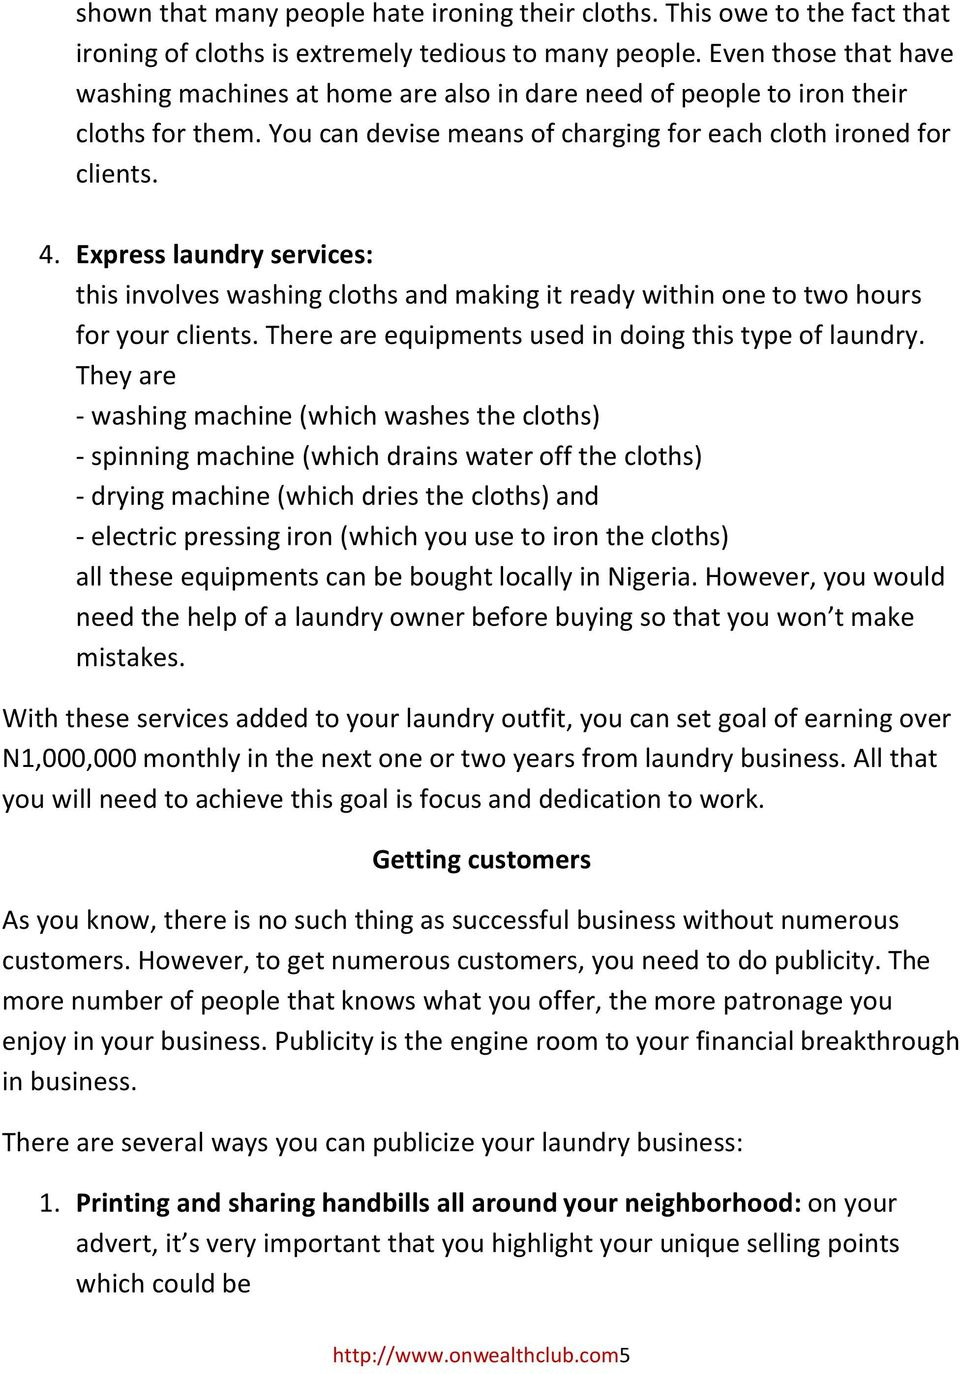 Express laundry services: this involves washing cloths and making it ready within one to two hours for your clients. There are equipments used in doing this type of laundry.